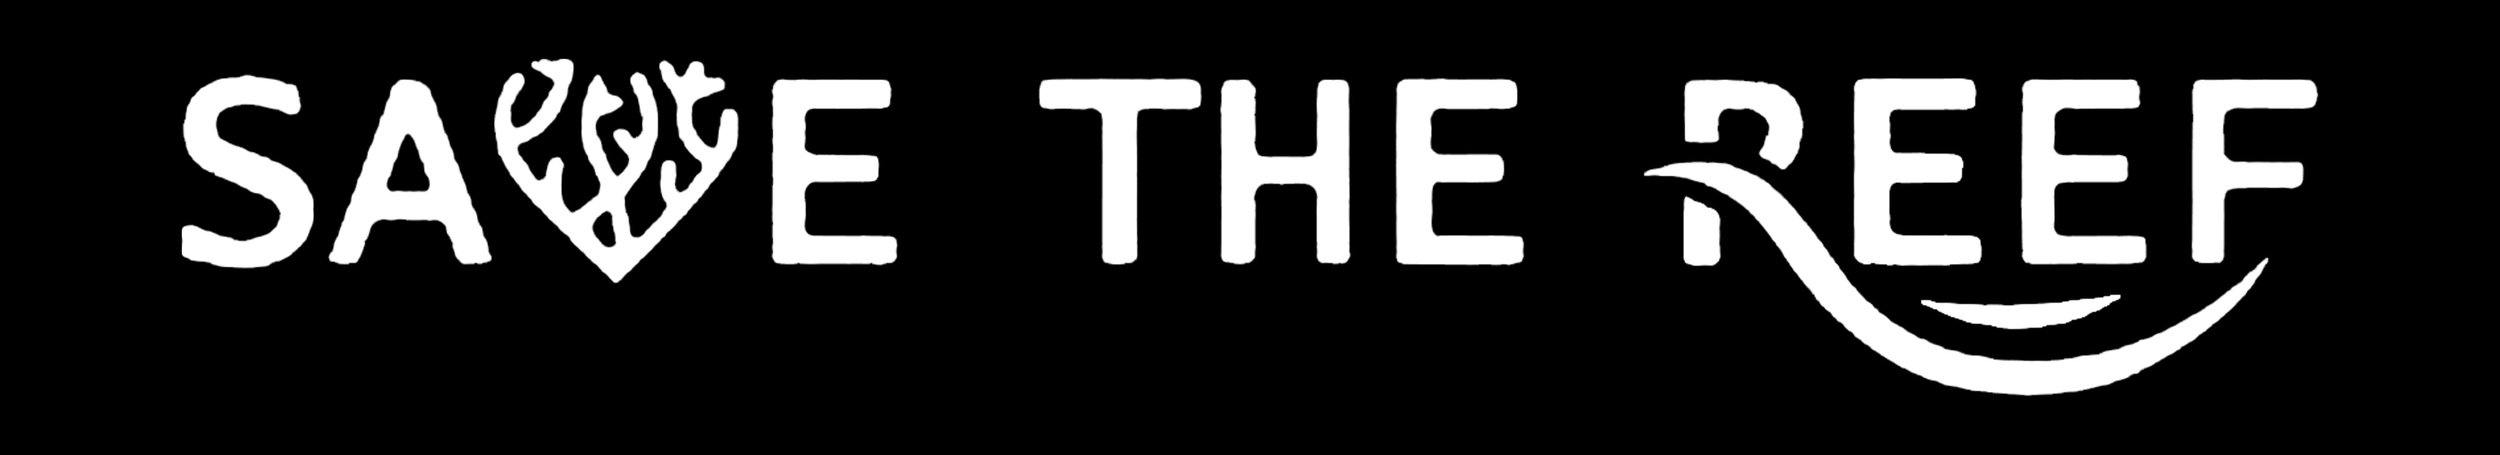 SAVE THE REEF LOGO